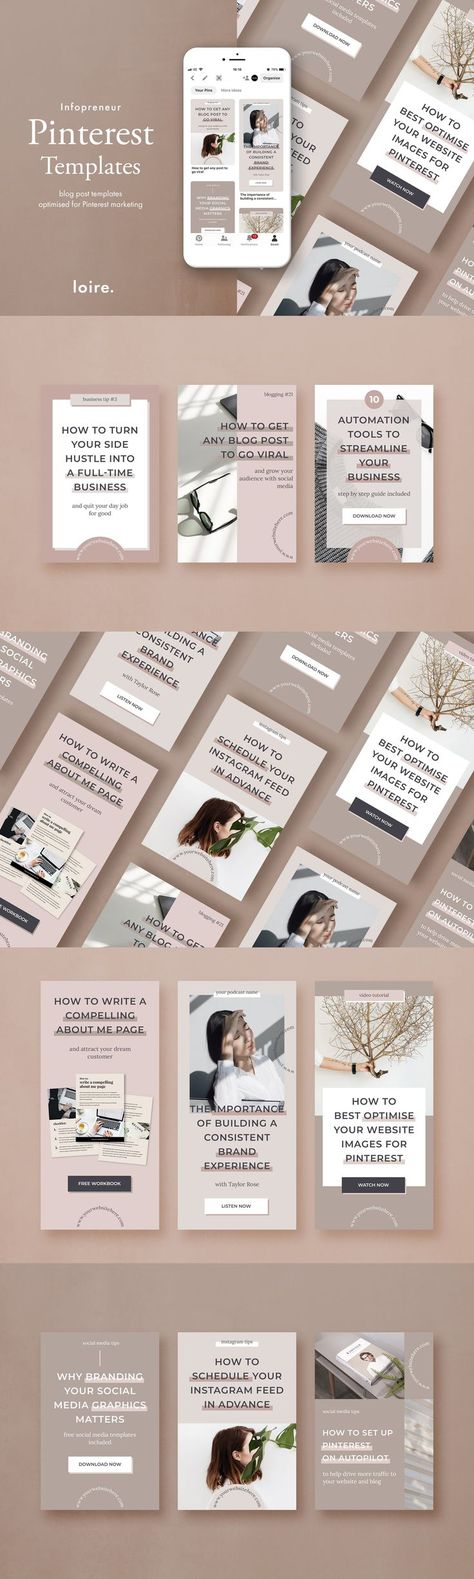 Pinterest branded pin templates by Studio Loire on @creativemarket